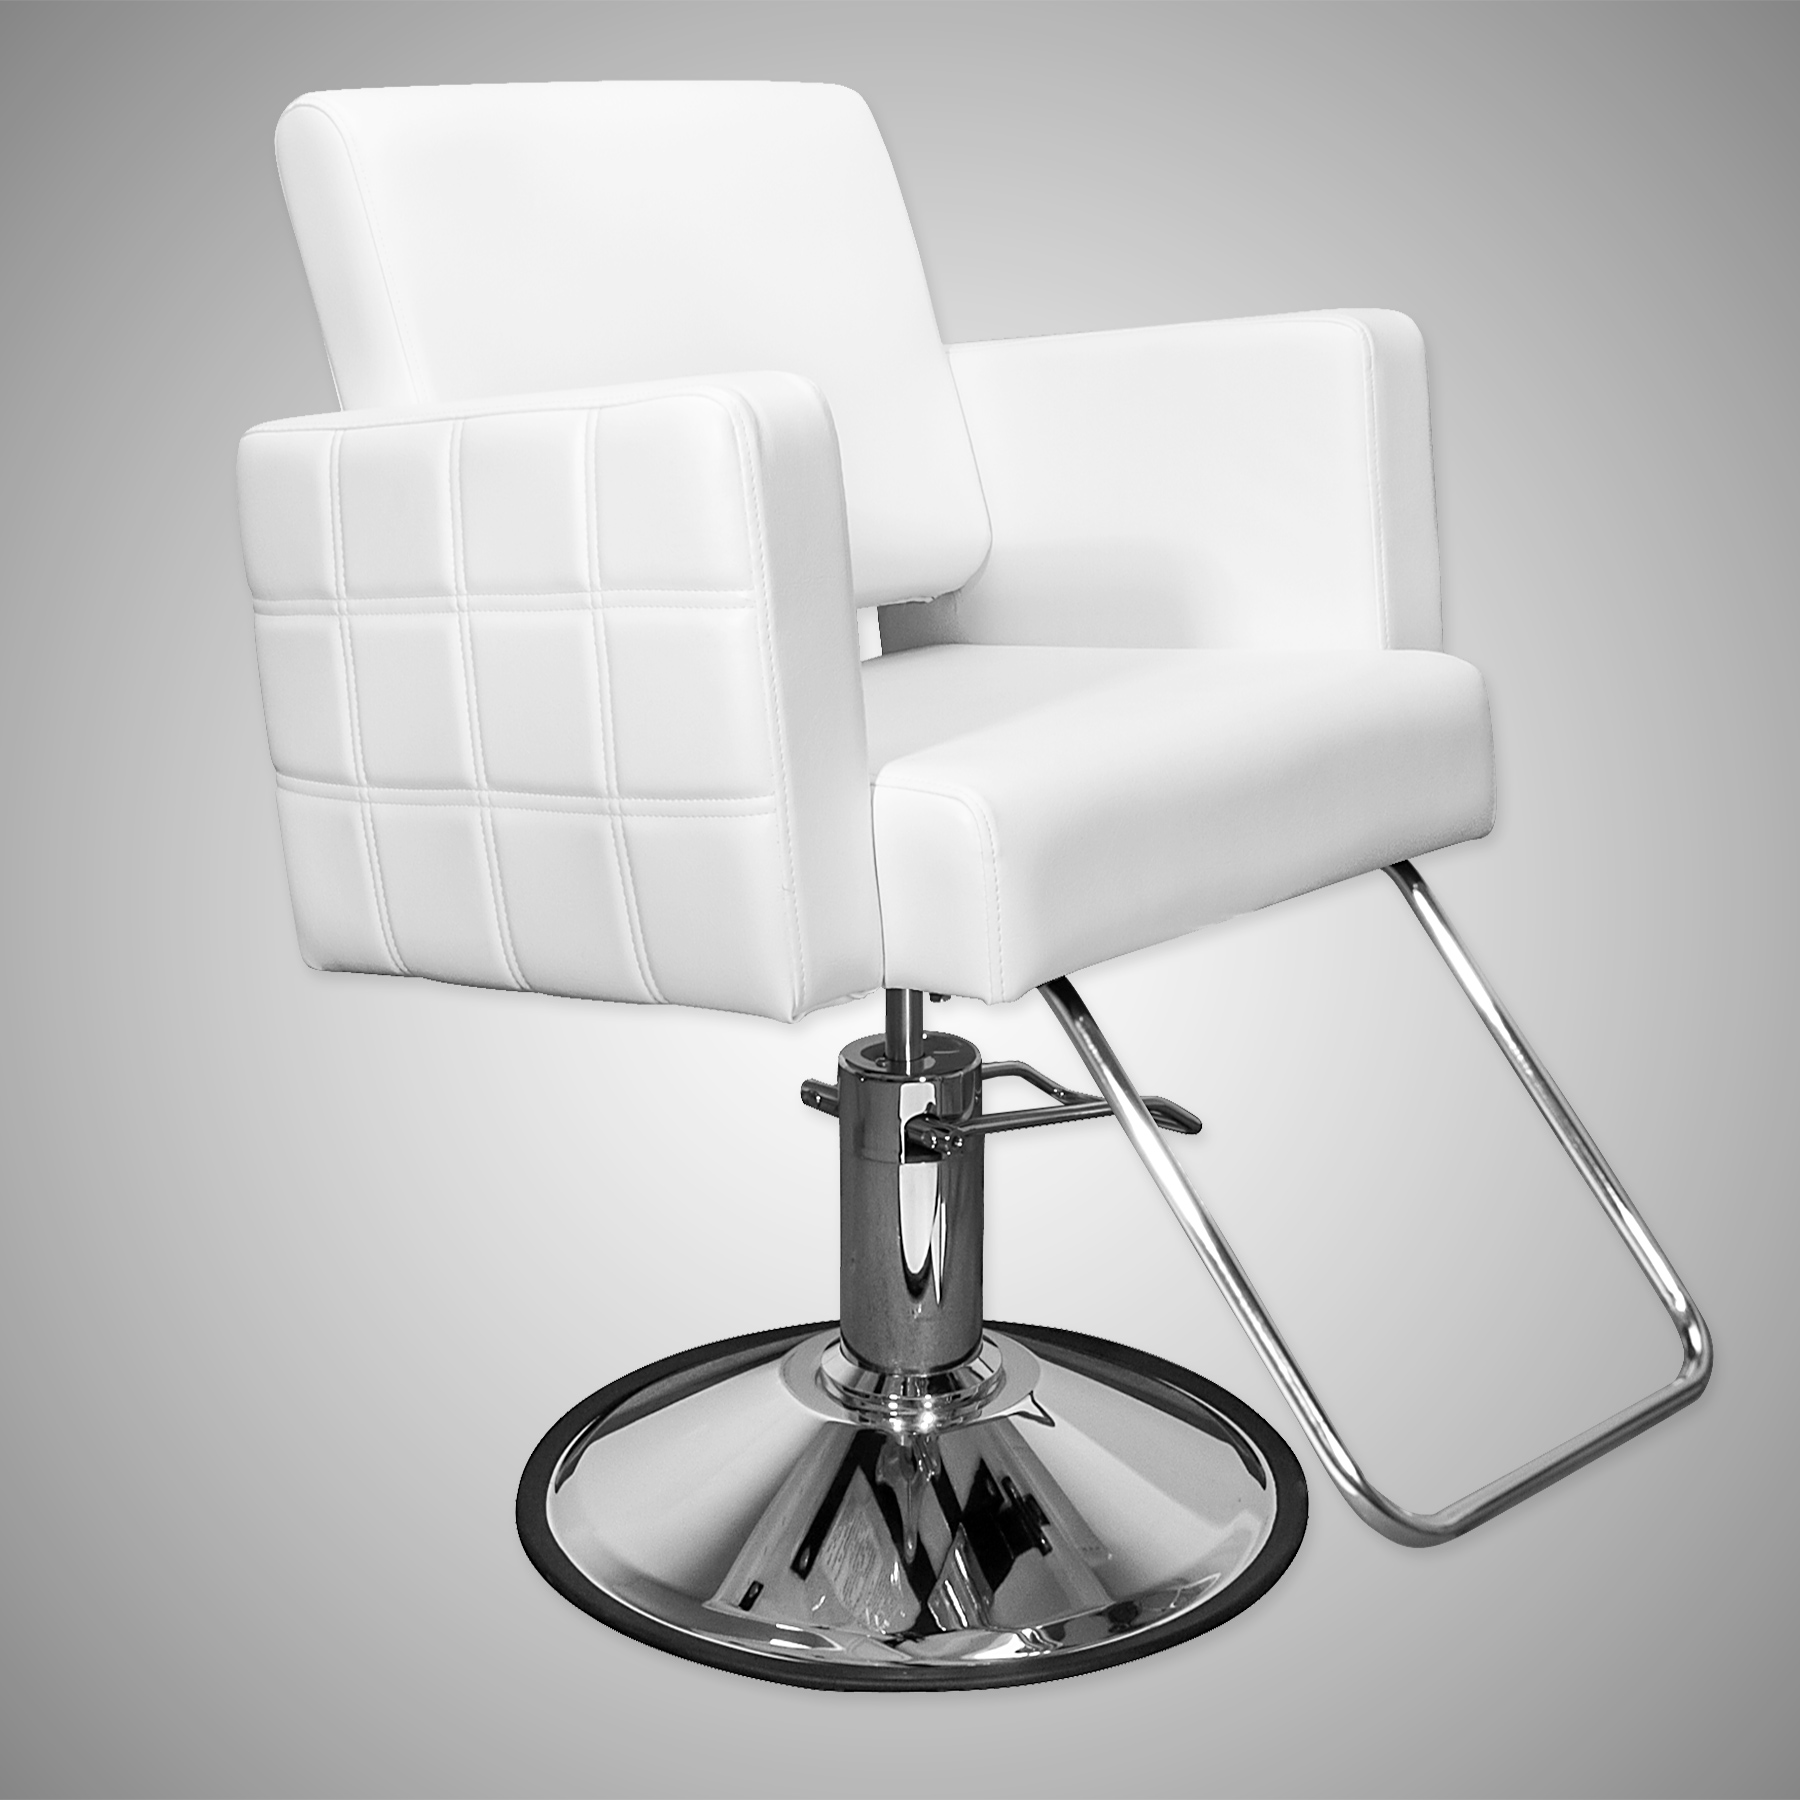 Havana Stylist Chair Quilted White alternative product image 7